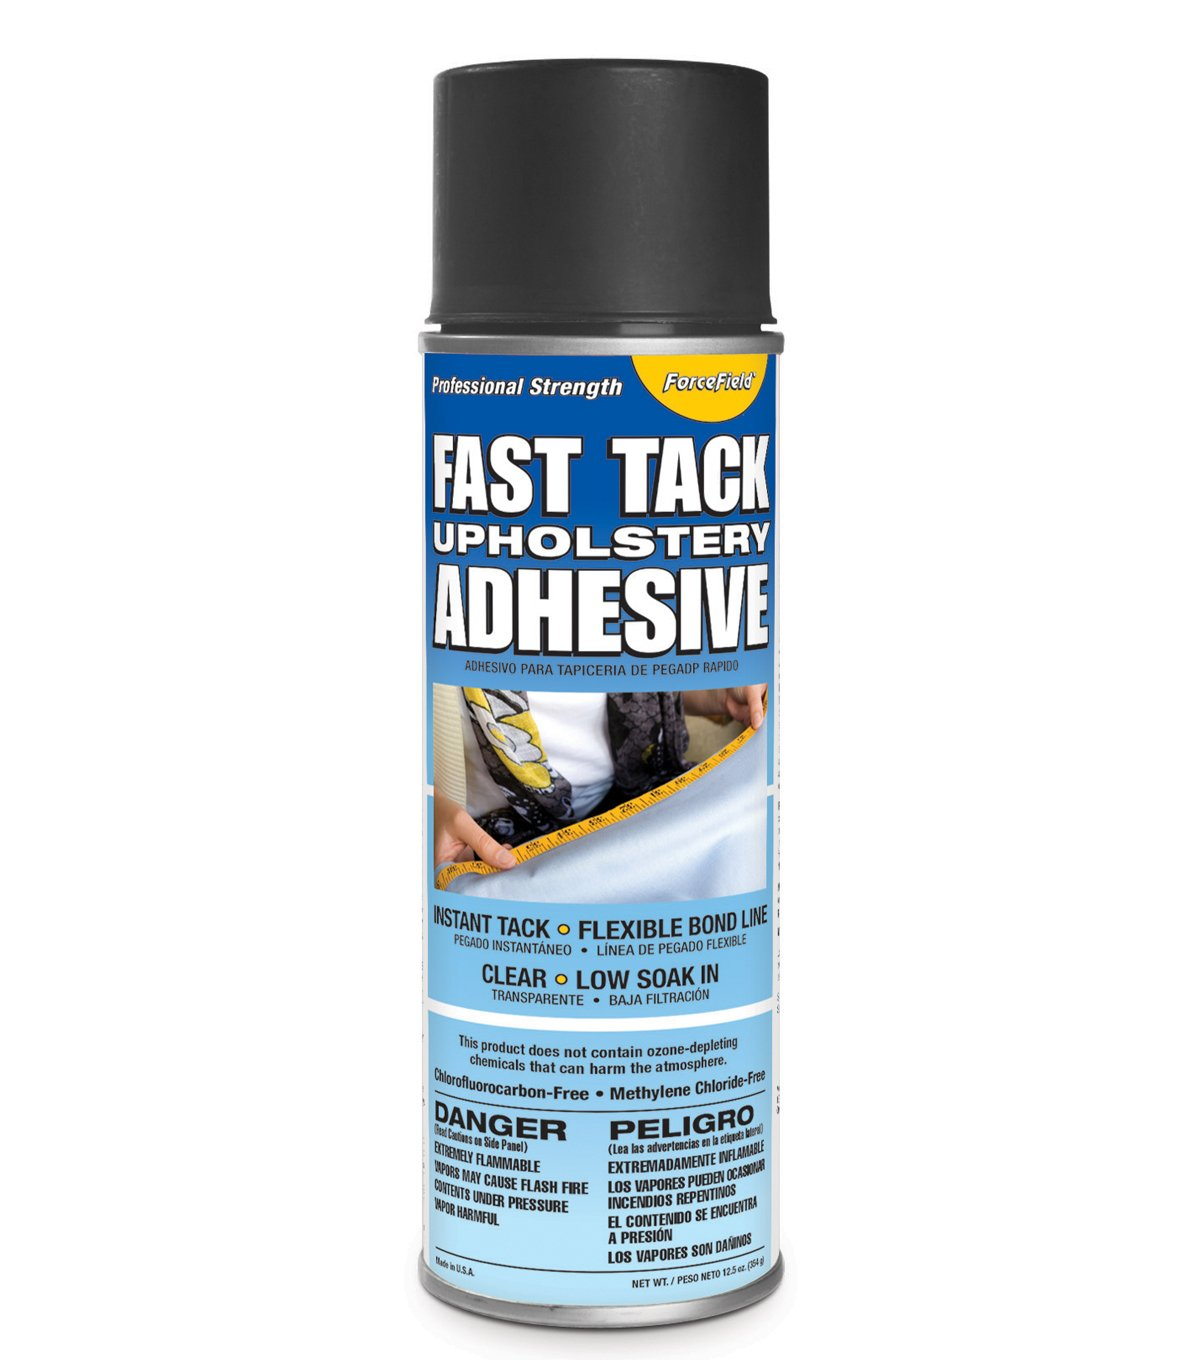 ForceField Fast Tack Upholstery Adhesive Professional Strength 12oz Spray